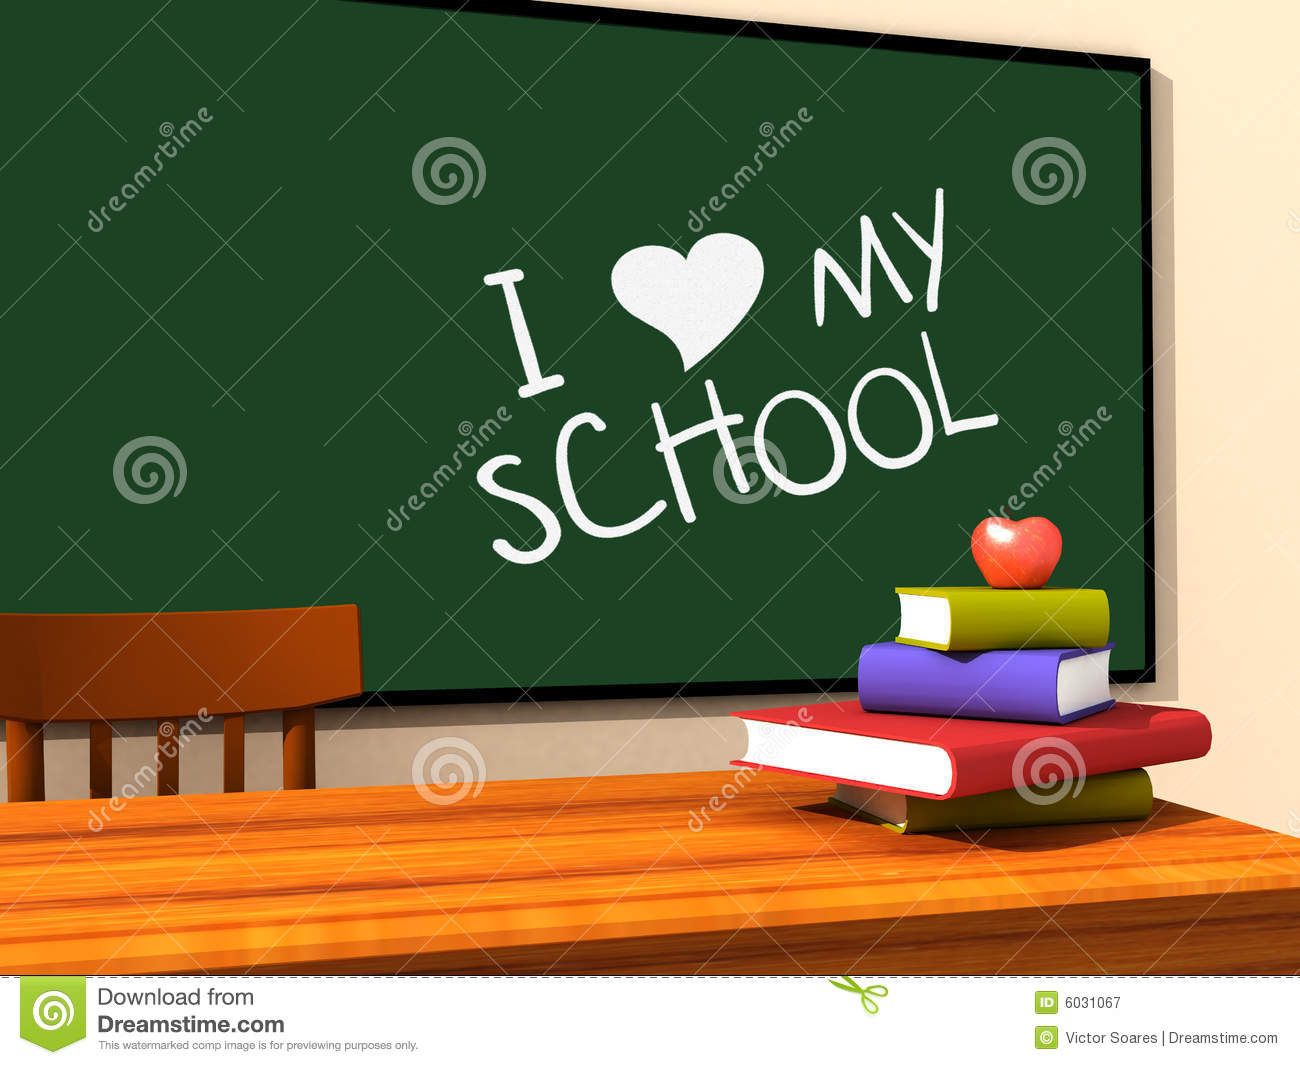 i love my school 6 / 8 ilovemyschool_0006 i love my school because students voice iipdf 305  mb (last modified on january 26, 2017) comments (-1) i love my school.